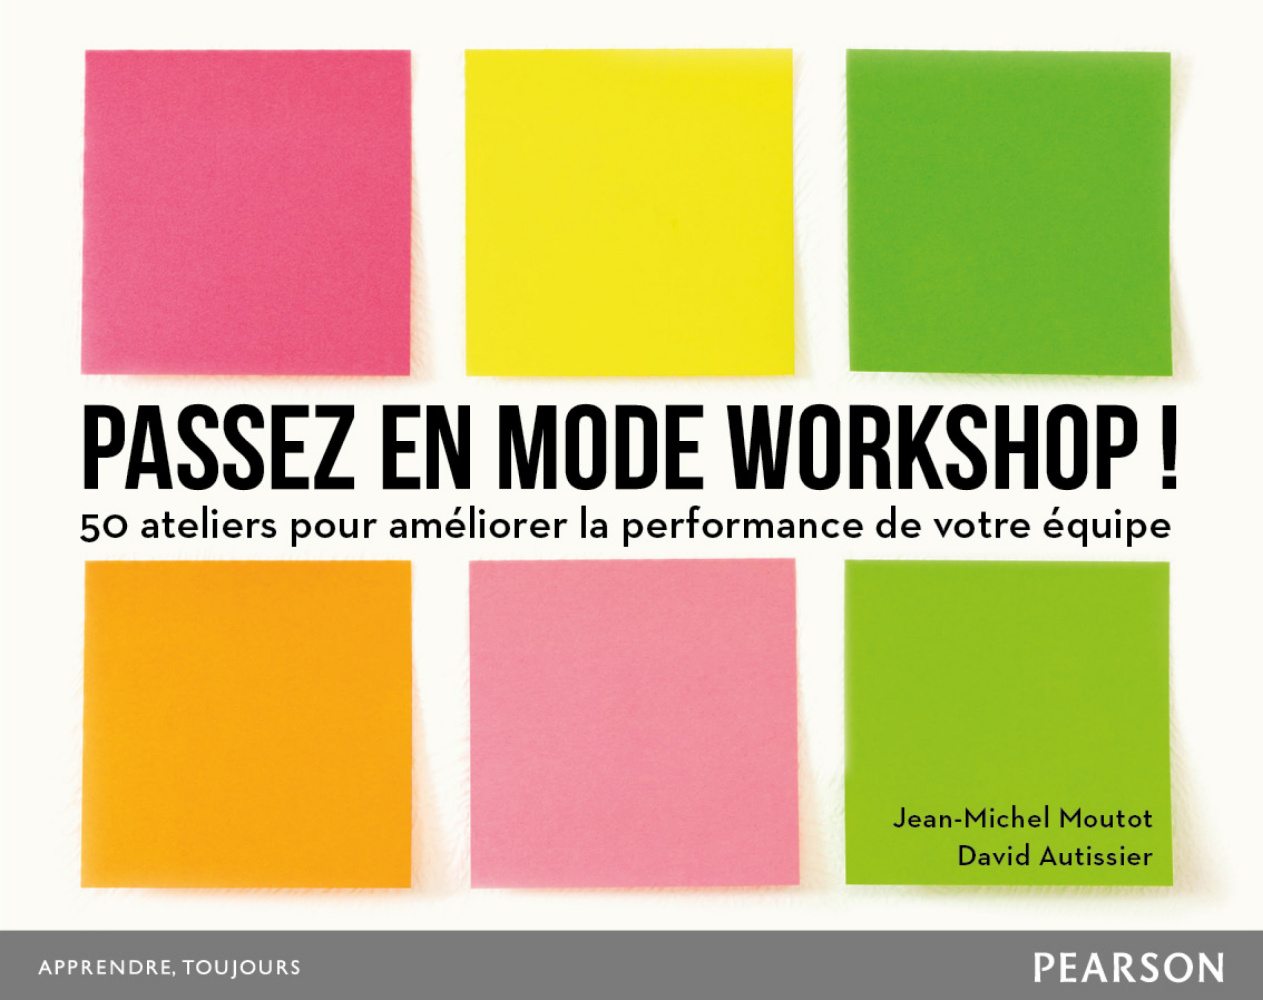 passez en mode workshop